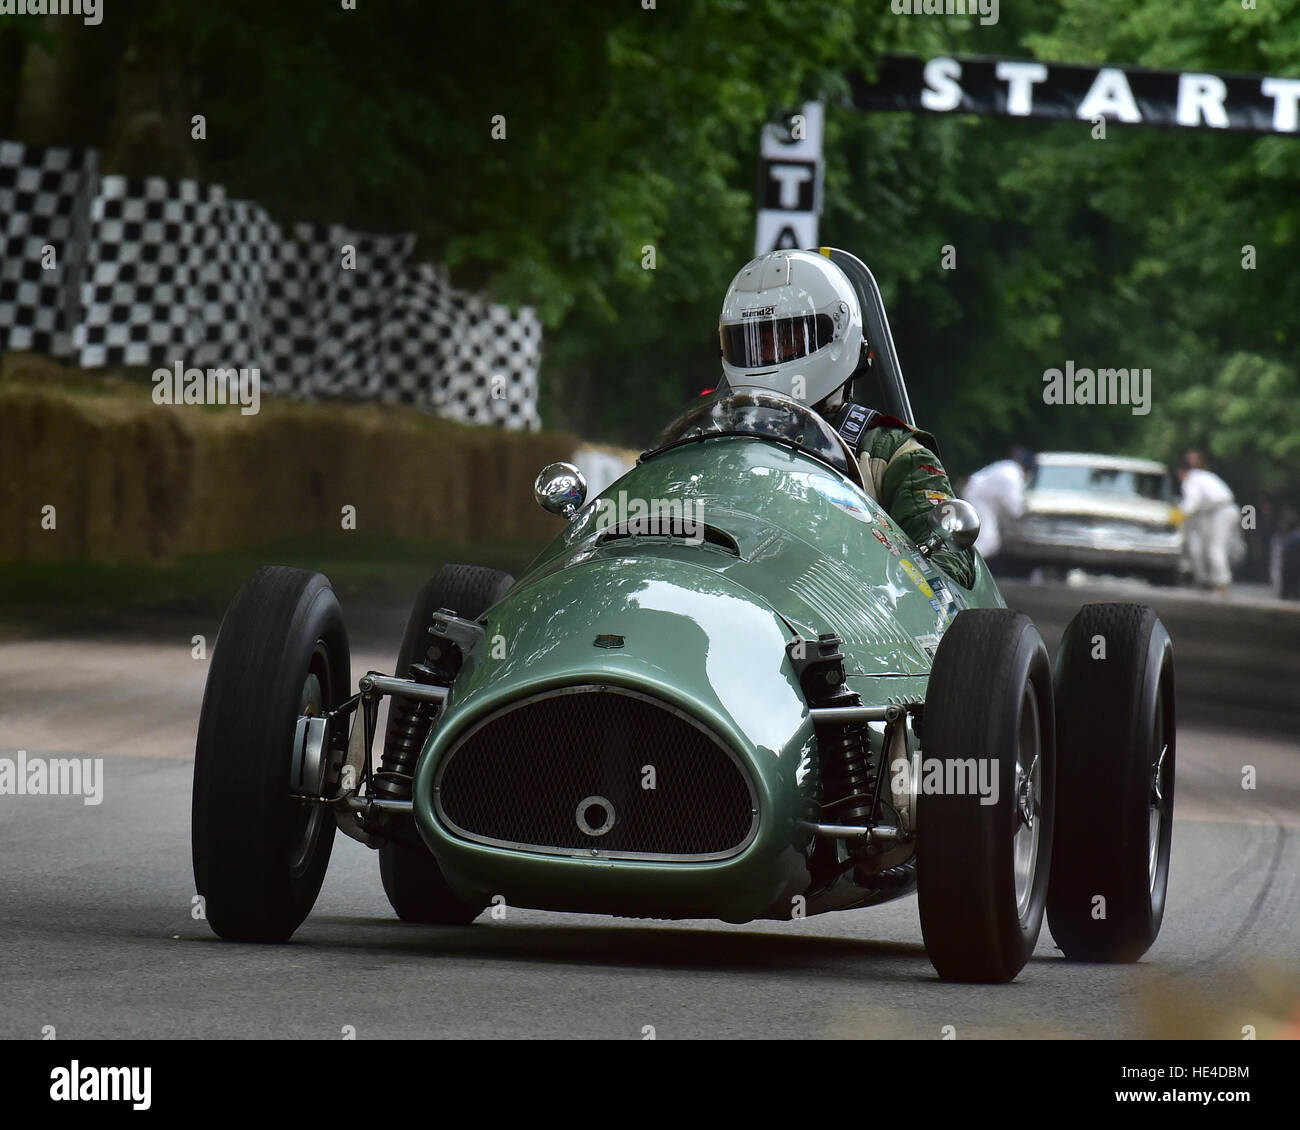 Nigel Batchelor, Kieft-Climax GP, Post War Grand Prix, Goodwood Festival of Speed, 2016. automobiles, cars, entertainment, - Stock Image